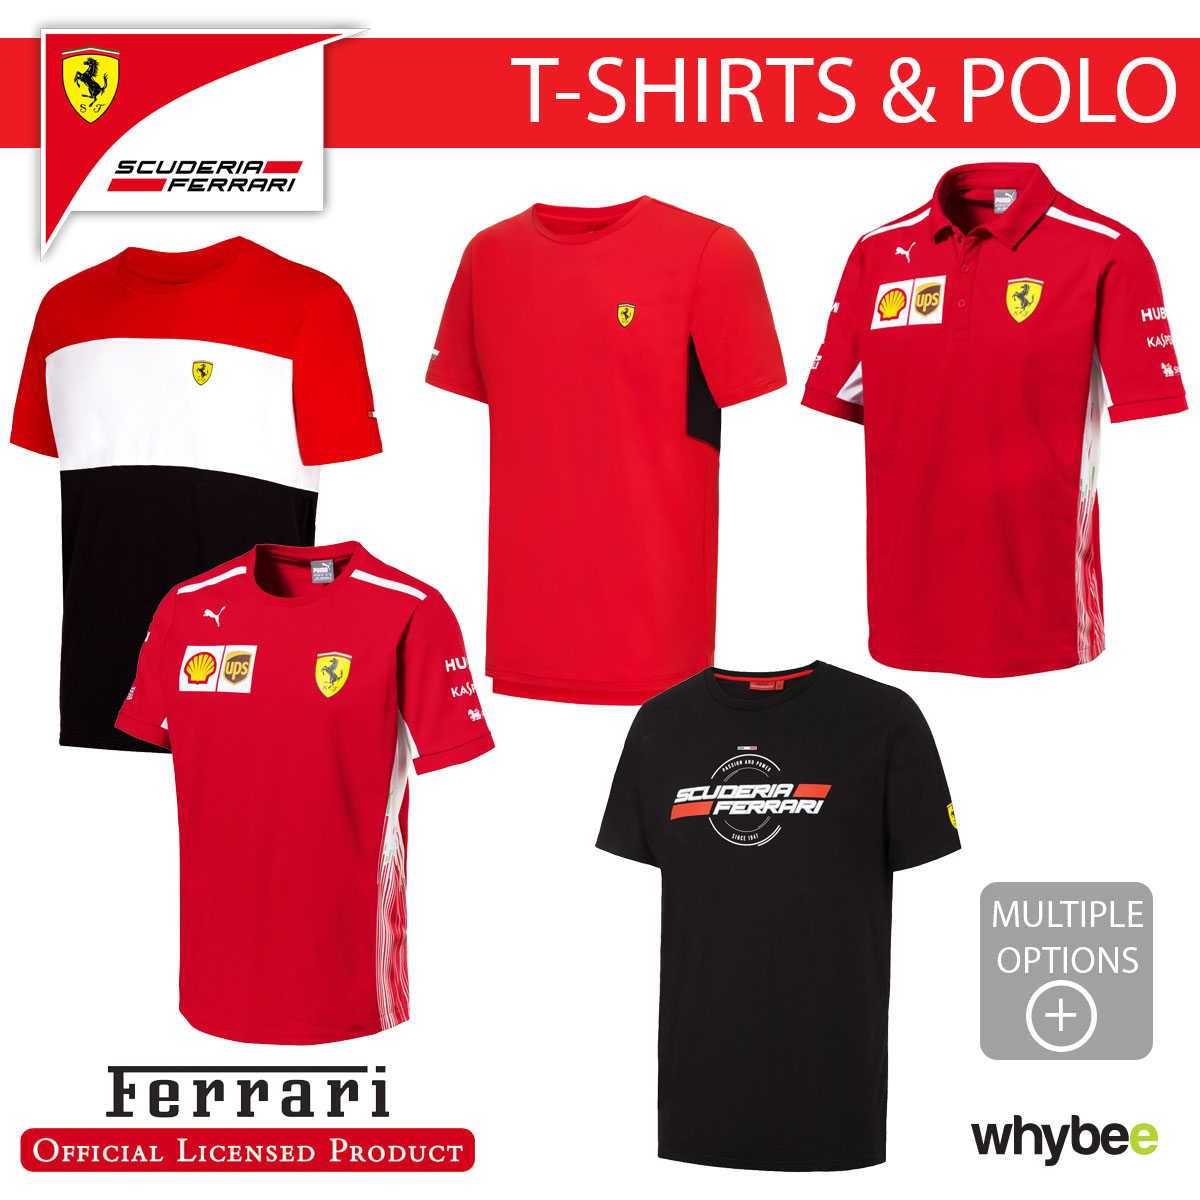 classic shoes top design latest style of 2019 Details about Ferrari F1 Formula One Team Mens T-Shirt & Polo Shirt  Official Full Range